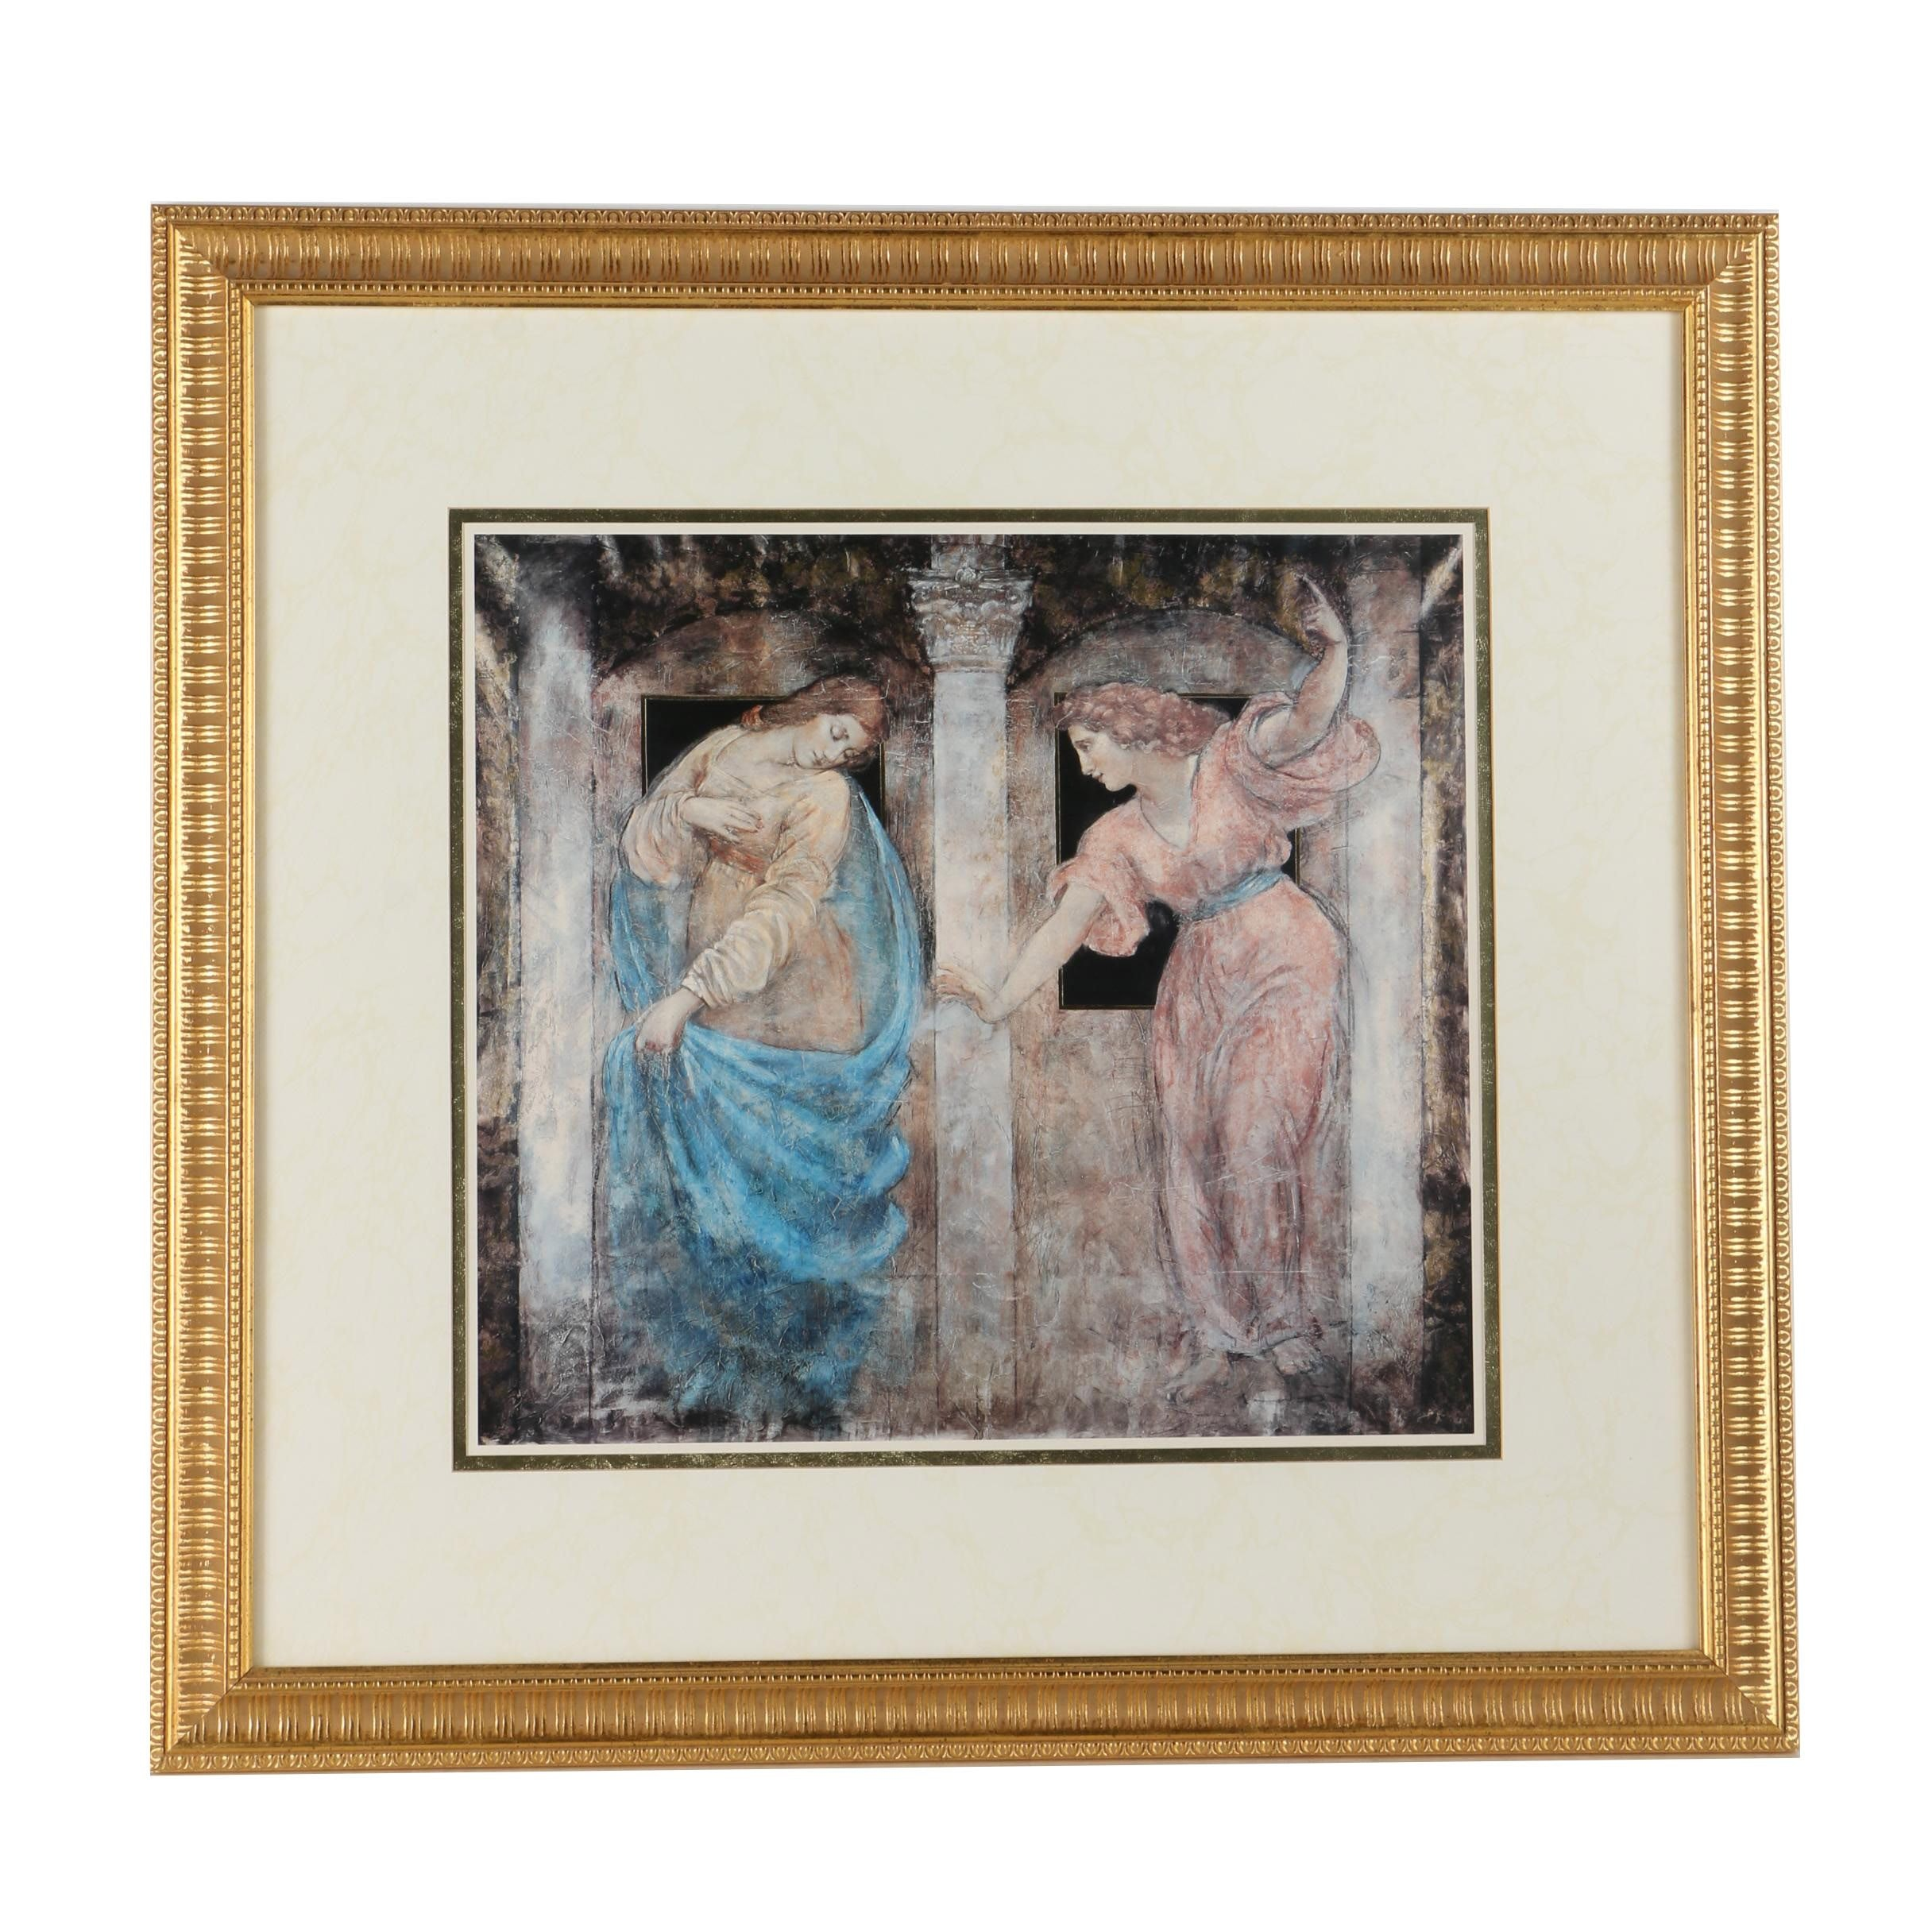 Framed Offset Lithograph After Fresco Style Painting